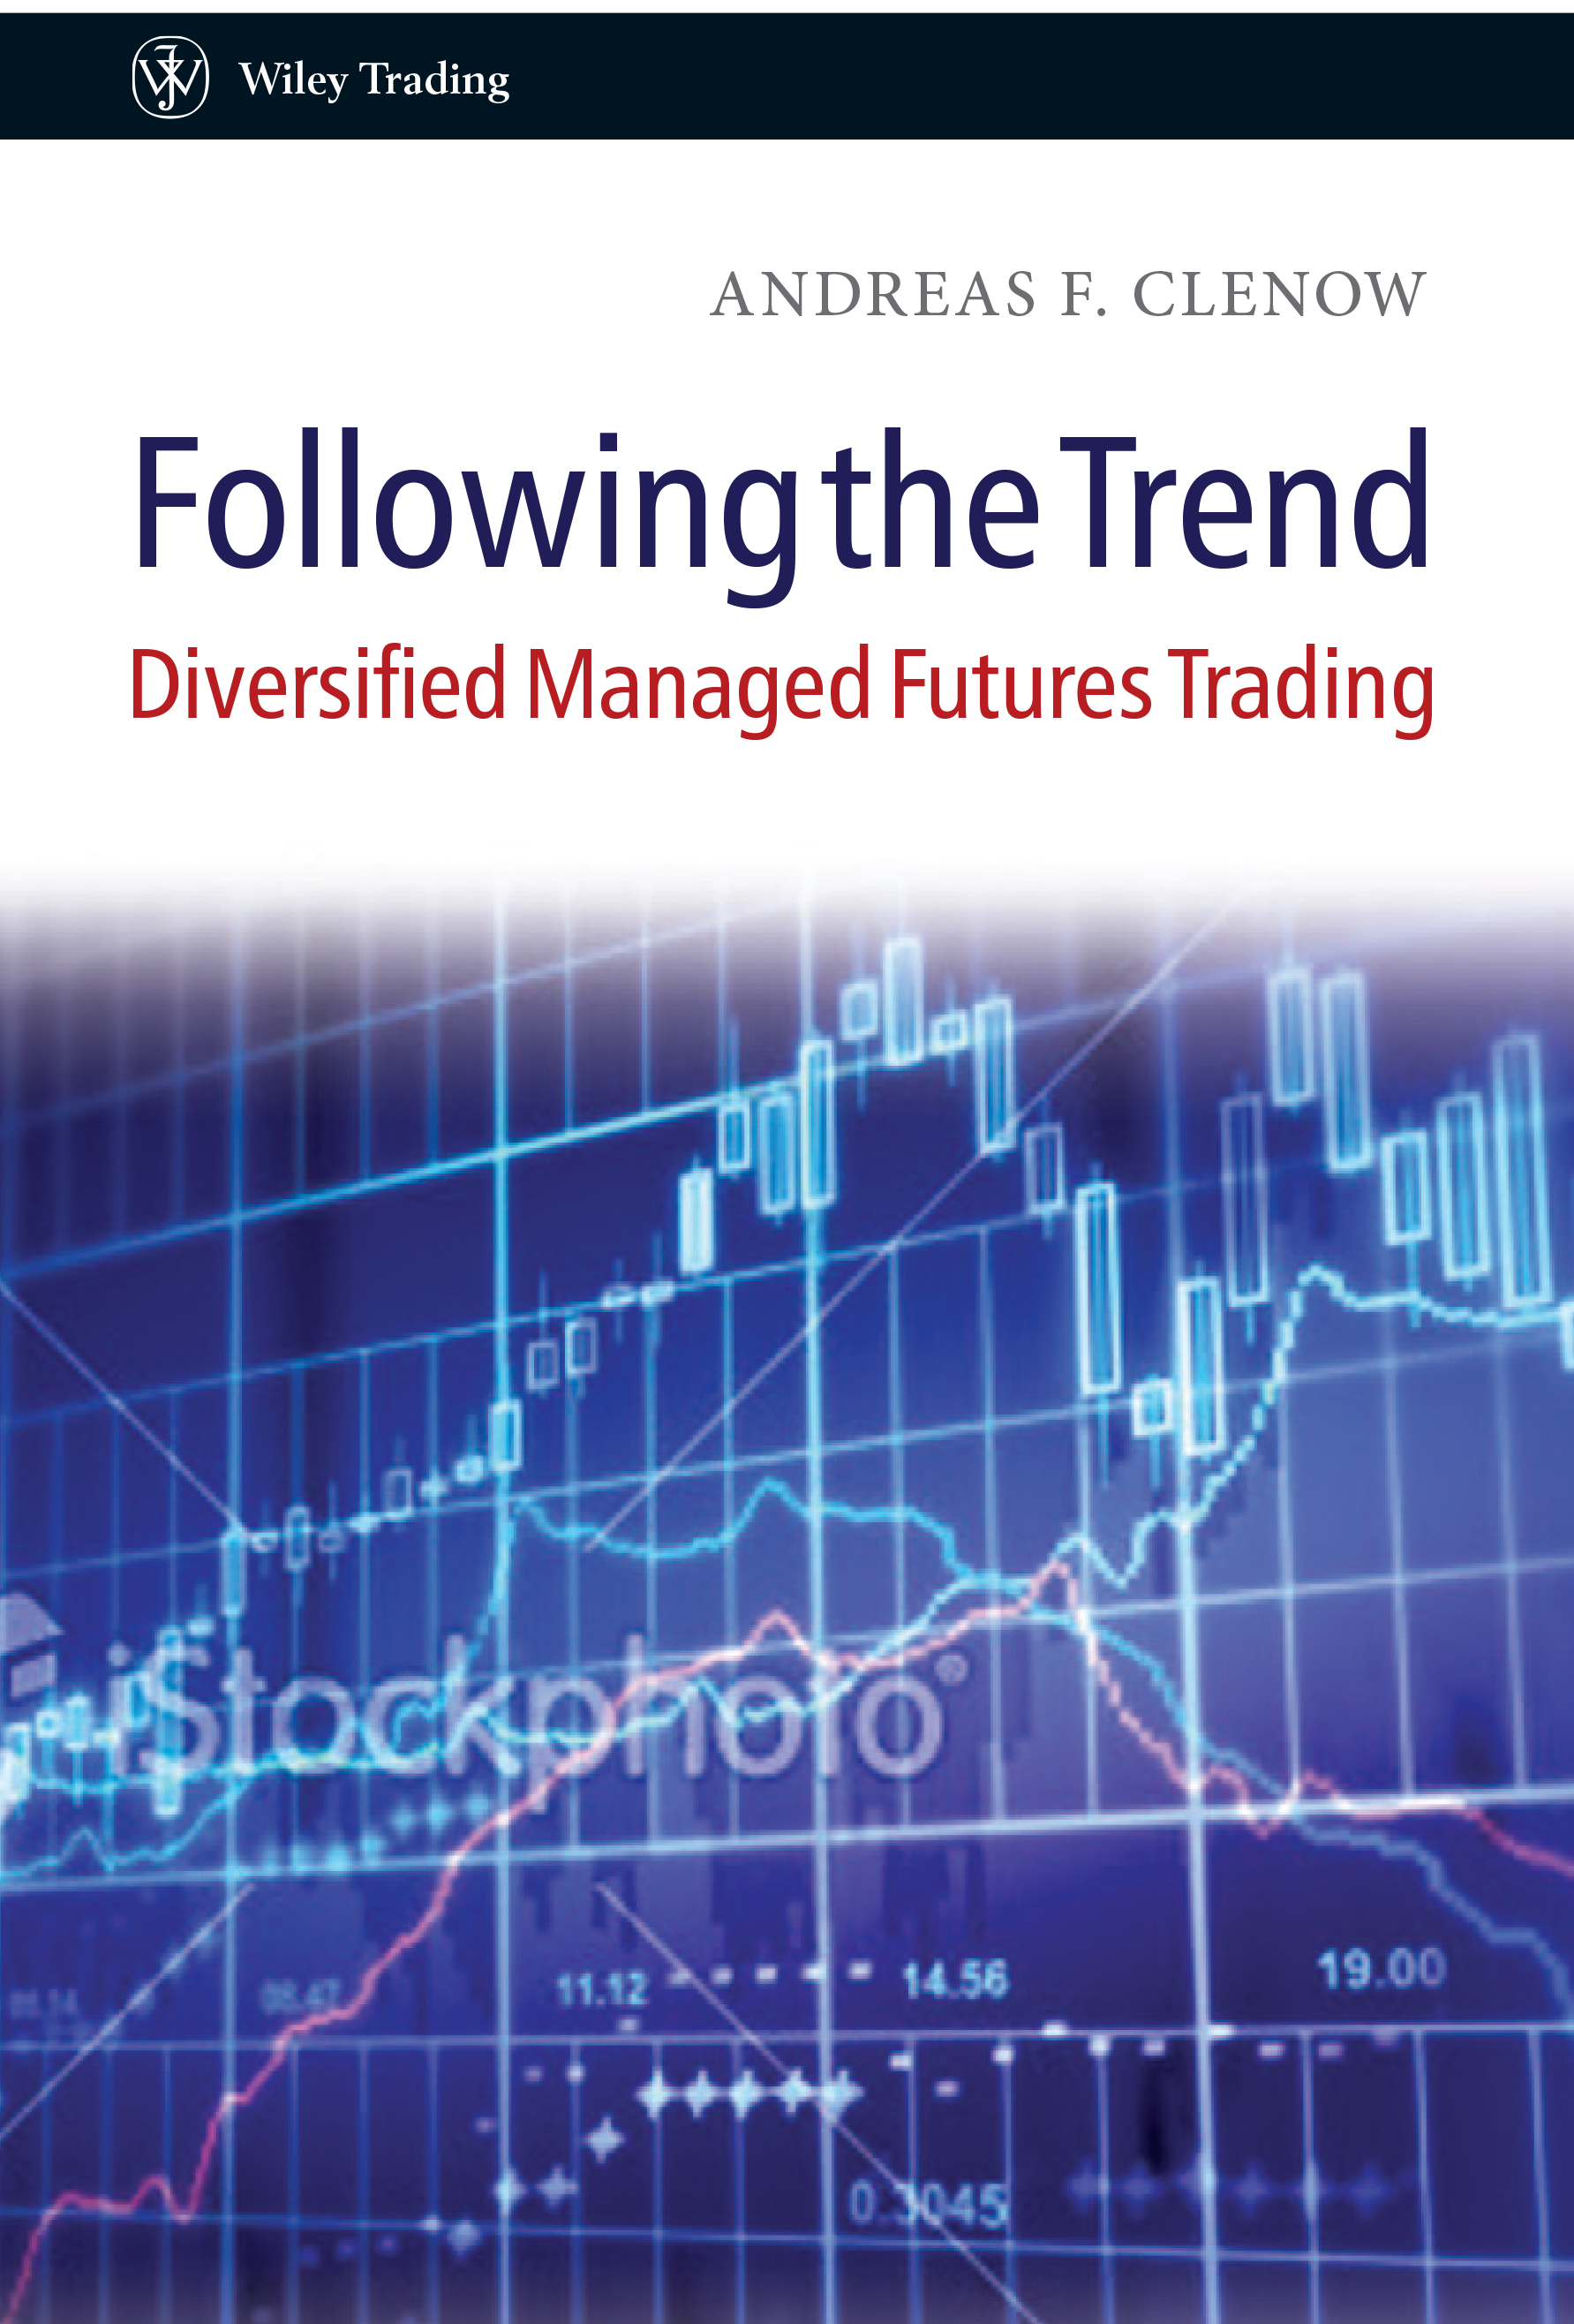 Why i am self publishing my new trading book following the trend clenowdiversified 05 clenowdiversified 06 clenowdiversified 07 clenowdiversified 08 fandeluxe Gallery